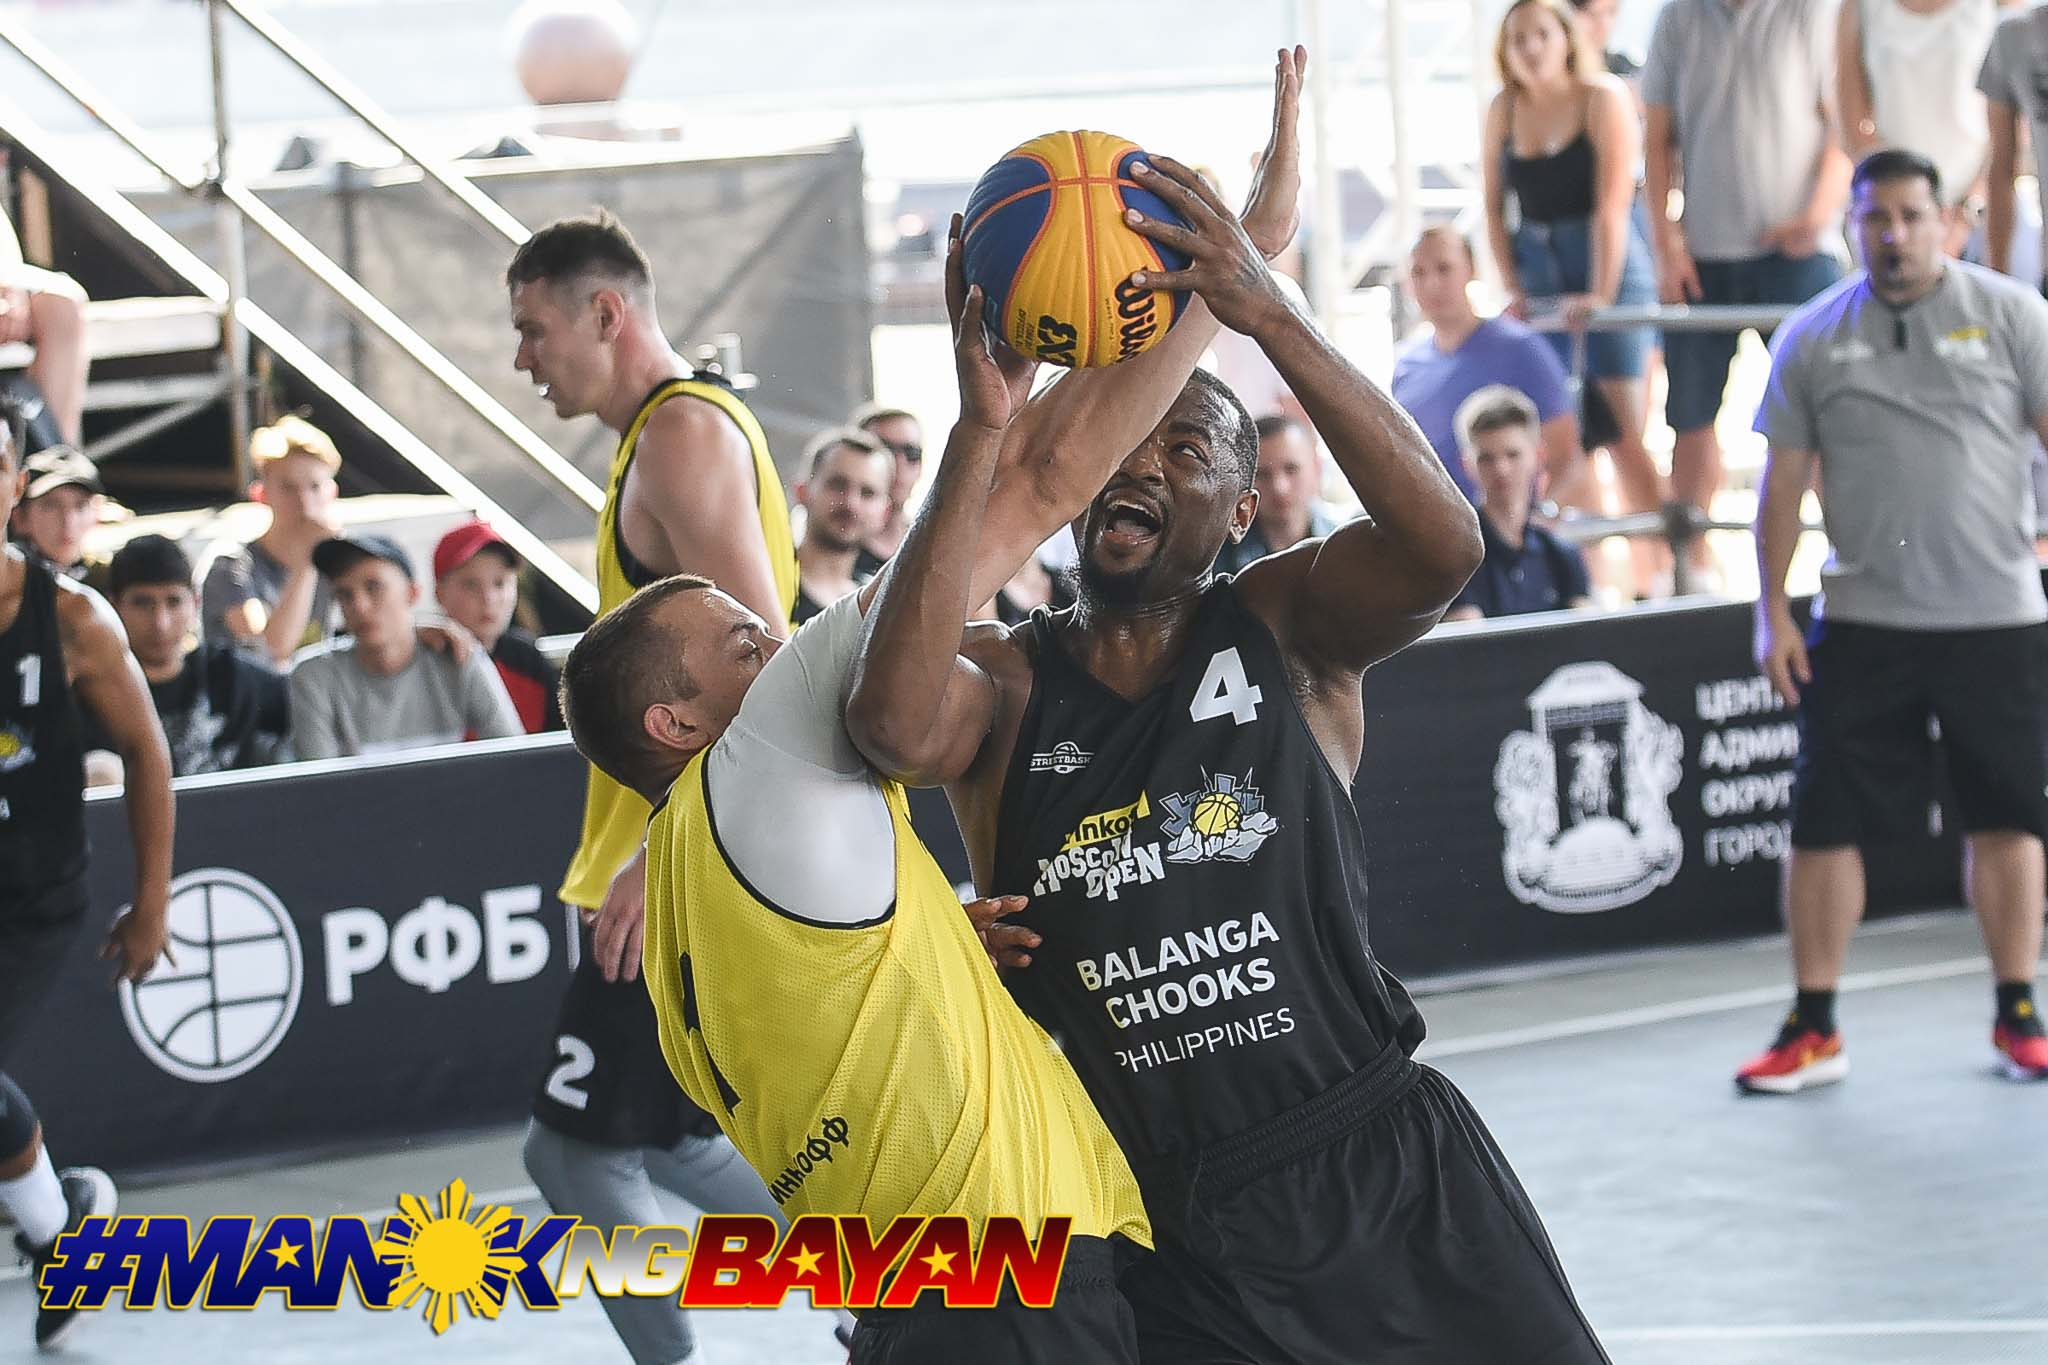 Tiebreaker Times Balanga Chooks-to-Go booted out as Moscow Inanomo gets back at Alvin Pasaol 3x3 Basketball Chooks-to-Go Pilipinas 3x3 News  Travis Franklin Moscow Inanomo Karl Dehesa Chris De Chavez Balanga Chooks Alvin Pasaol 2019 FIBA Moscow Tinkoff Challenger